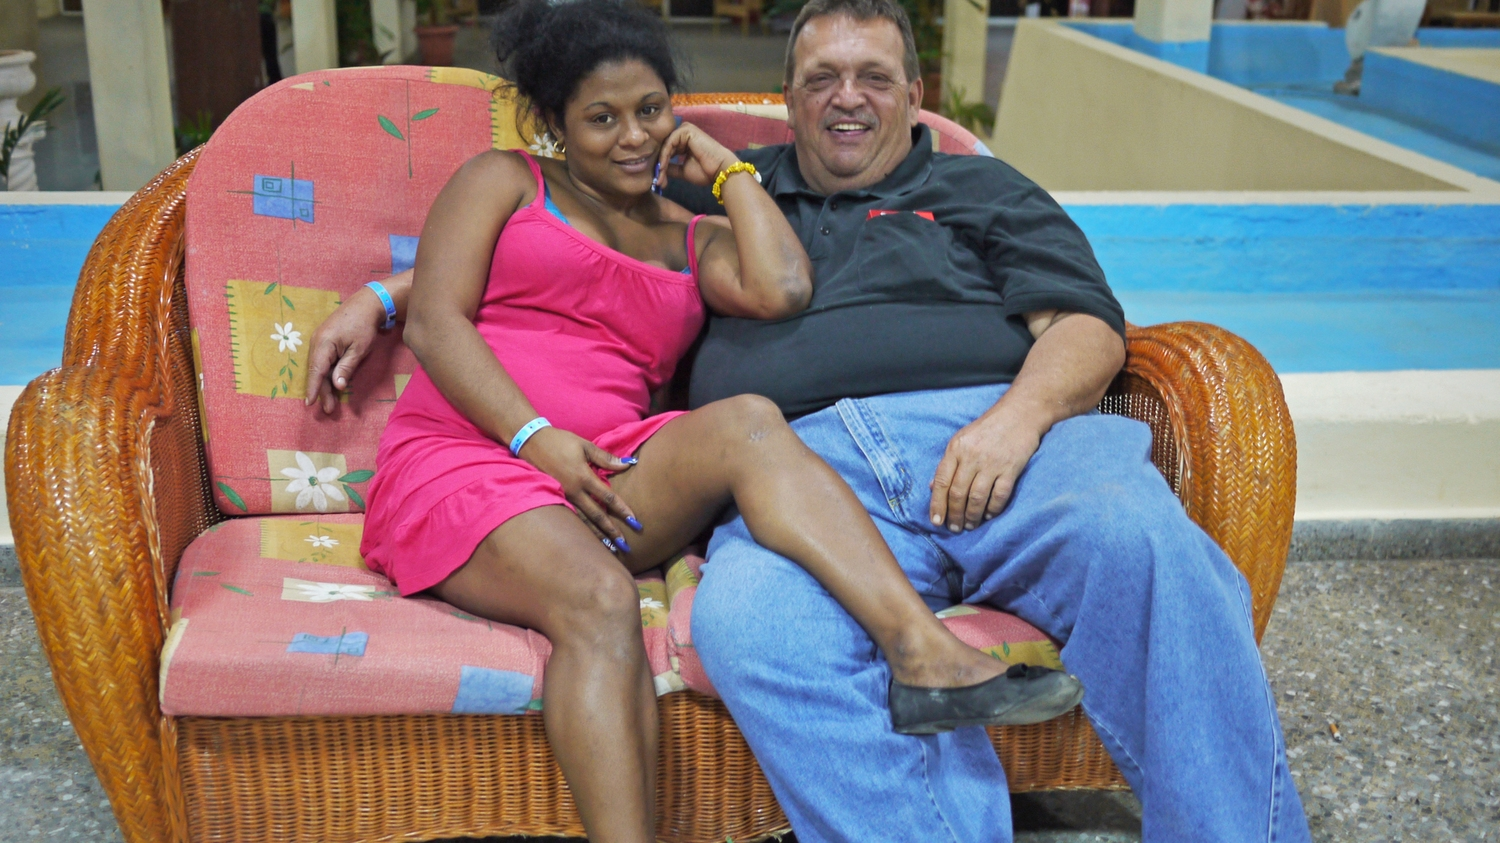 Tourist Sex Couple, Cuba (2014)